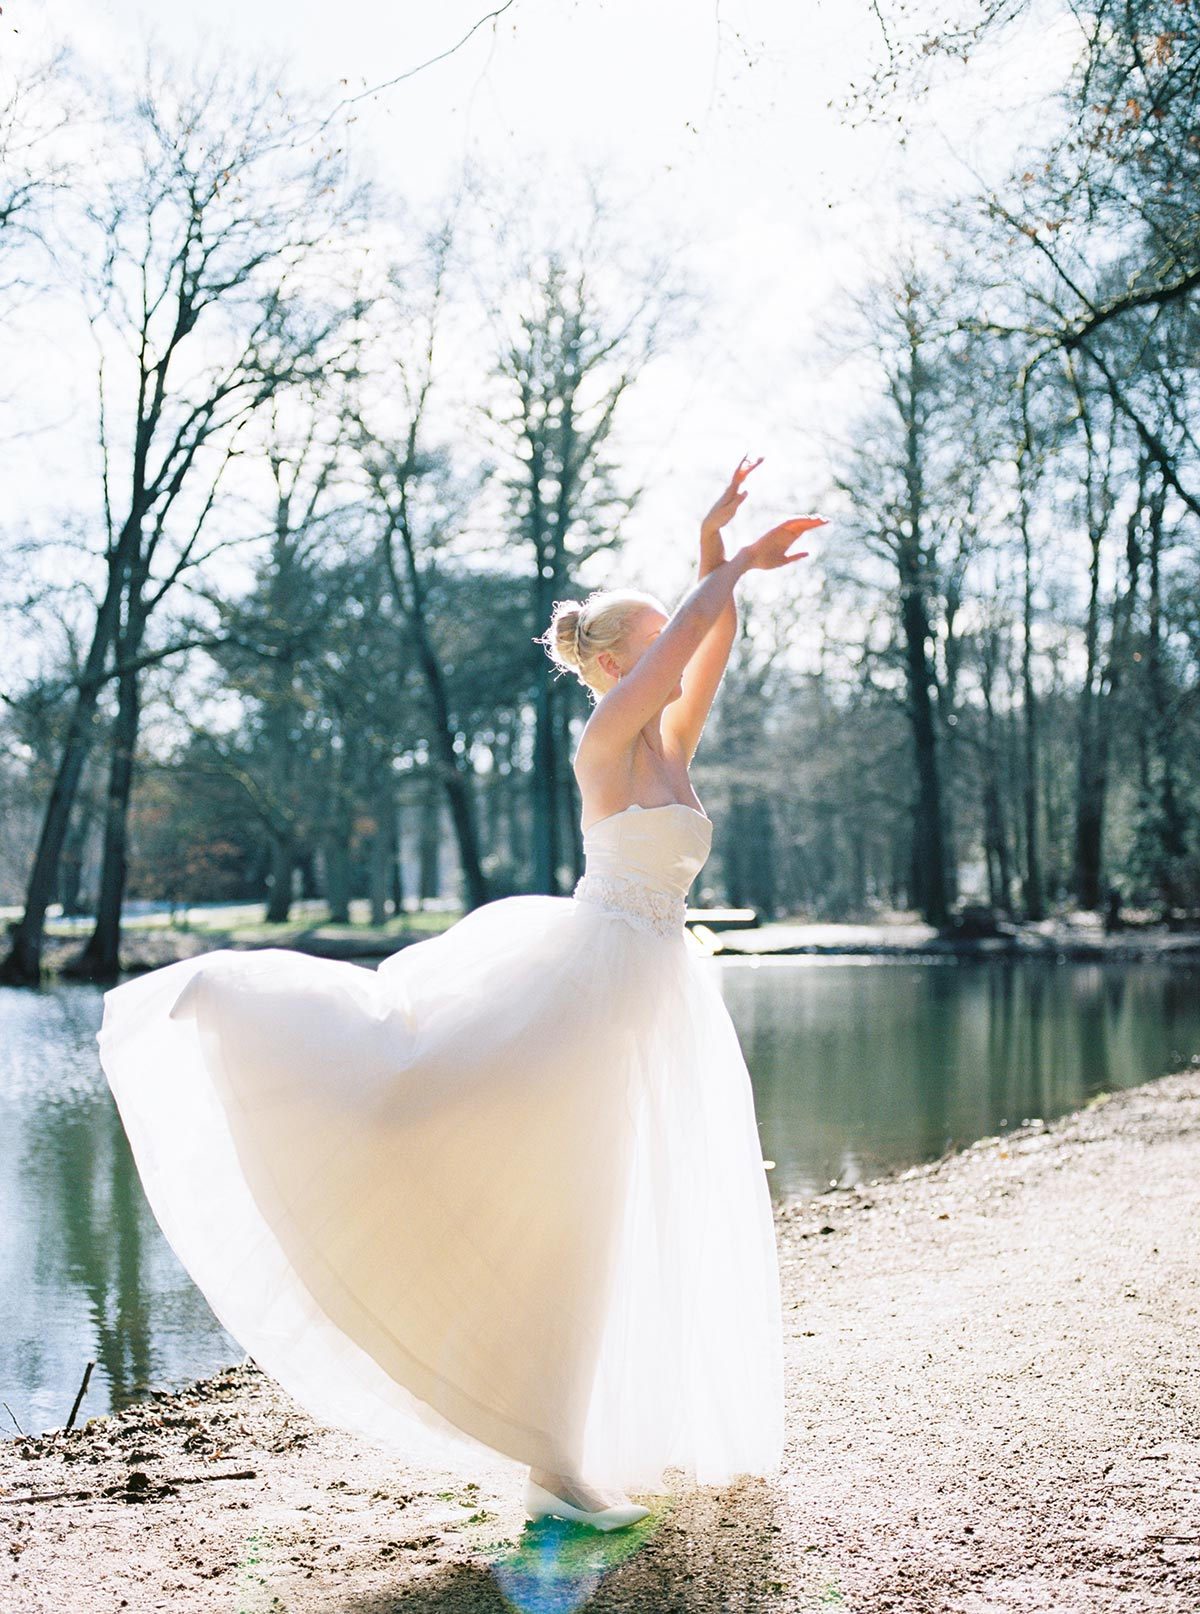 swanlake-editorial-by-chymo-more-photography-8